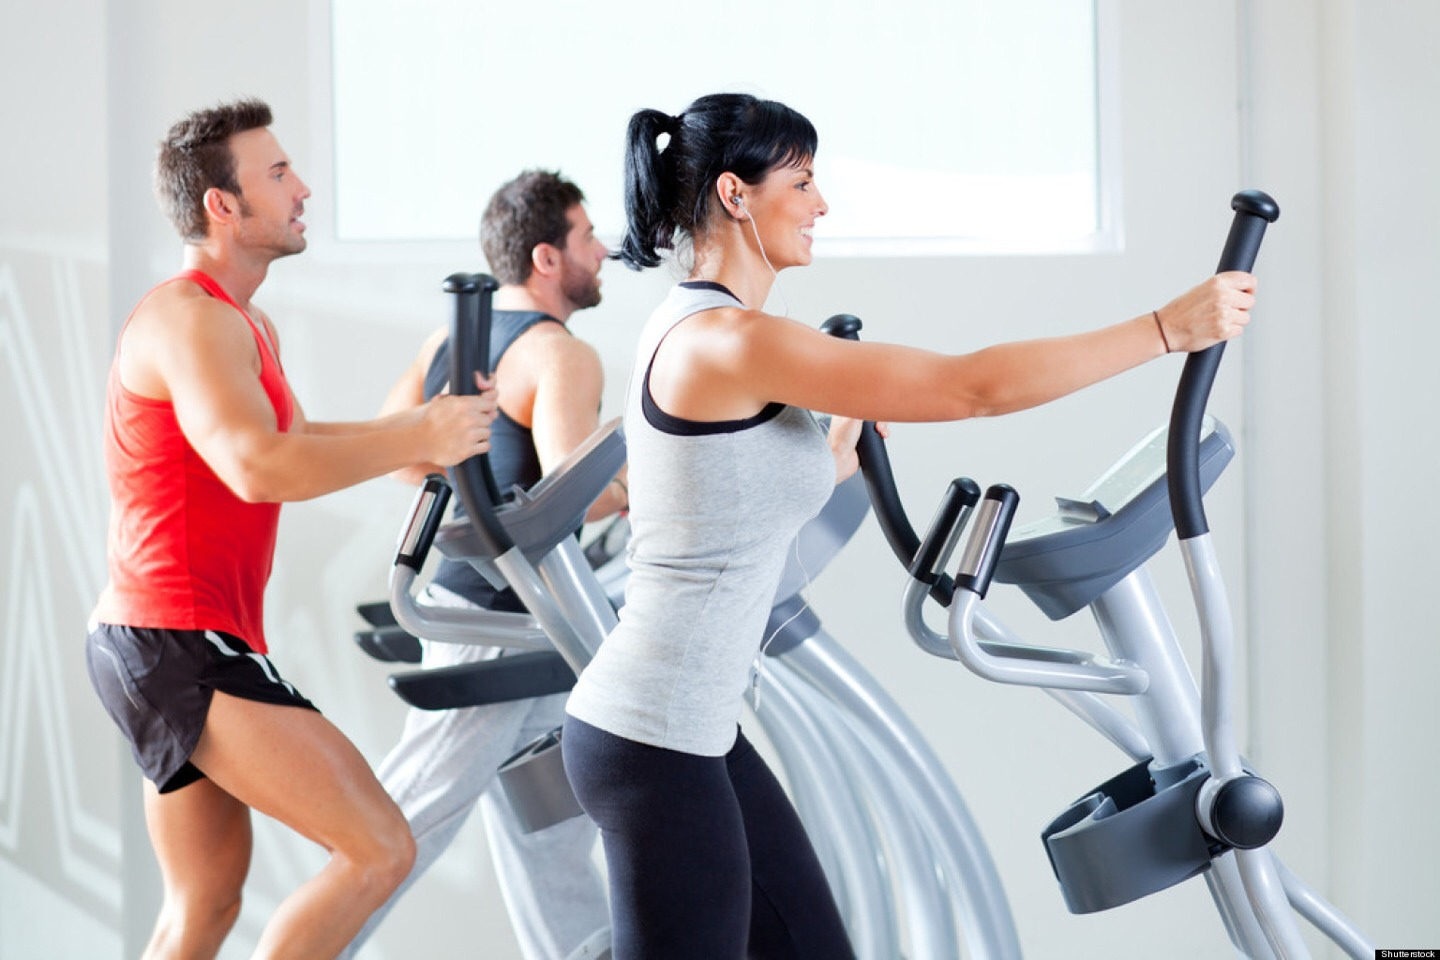 Regular exercise is important when trying to loose weight. It's important to find an enjoyable activity including exercise to put in to daily lifestyle. Getting 30 minutes of exercise for four or five days a week will dramatically improve your health.